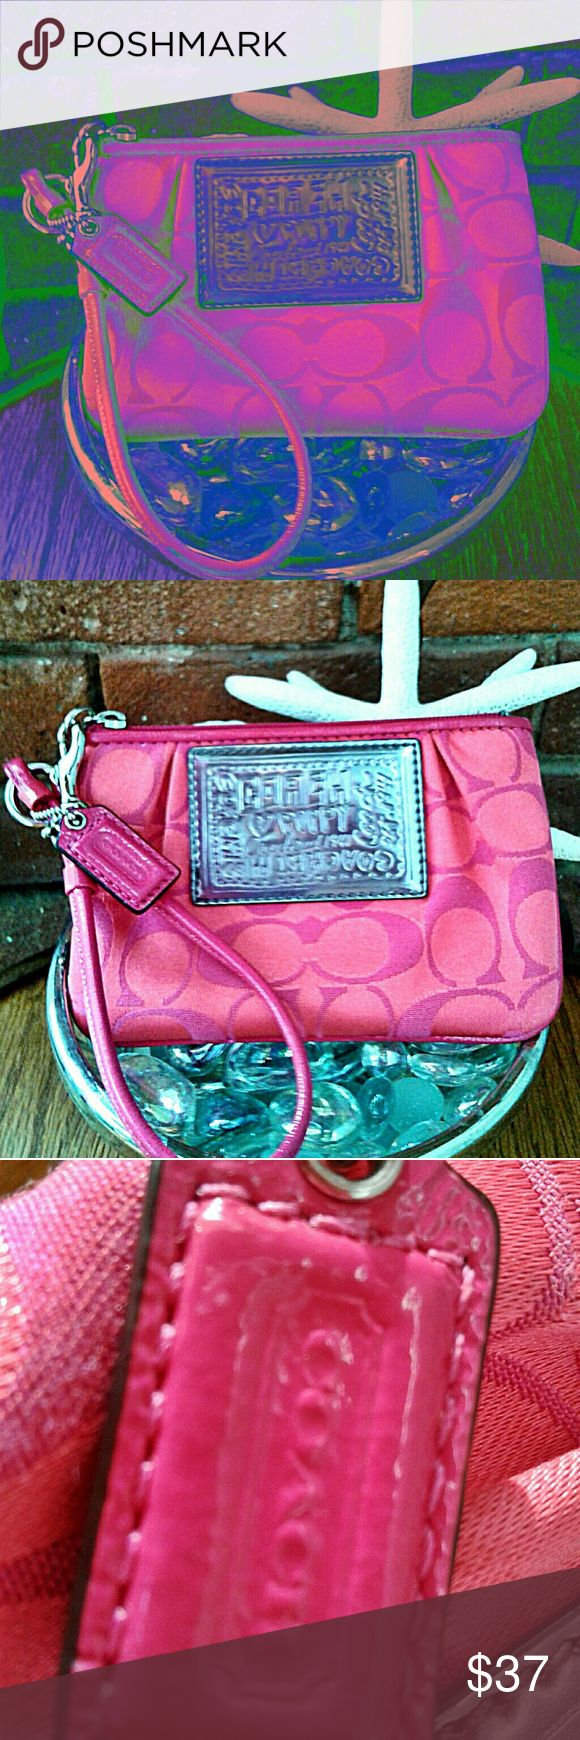 "💜🌼 COACH POPPY SIGNATURE C WRISTLET EUC 💜🌼 💜 SUPER CUTE COACH POPPY SIGNATURE C WRISTLET, HOT PINK COLOR. IN EXCELLENT PRE ♡♡♡ CONDITION. TOP ZIP & OPEN INSIDE.MEASURES 6"" LONG x 4""WIDE AND THE WRISTSTRAP DROP IS 6"". A SWEET LITTLE BAG~ CLEAN & CUTE❣ Coach Bags Clutches & Wristlets"